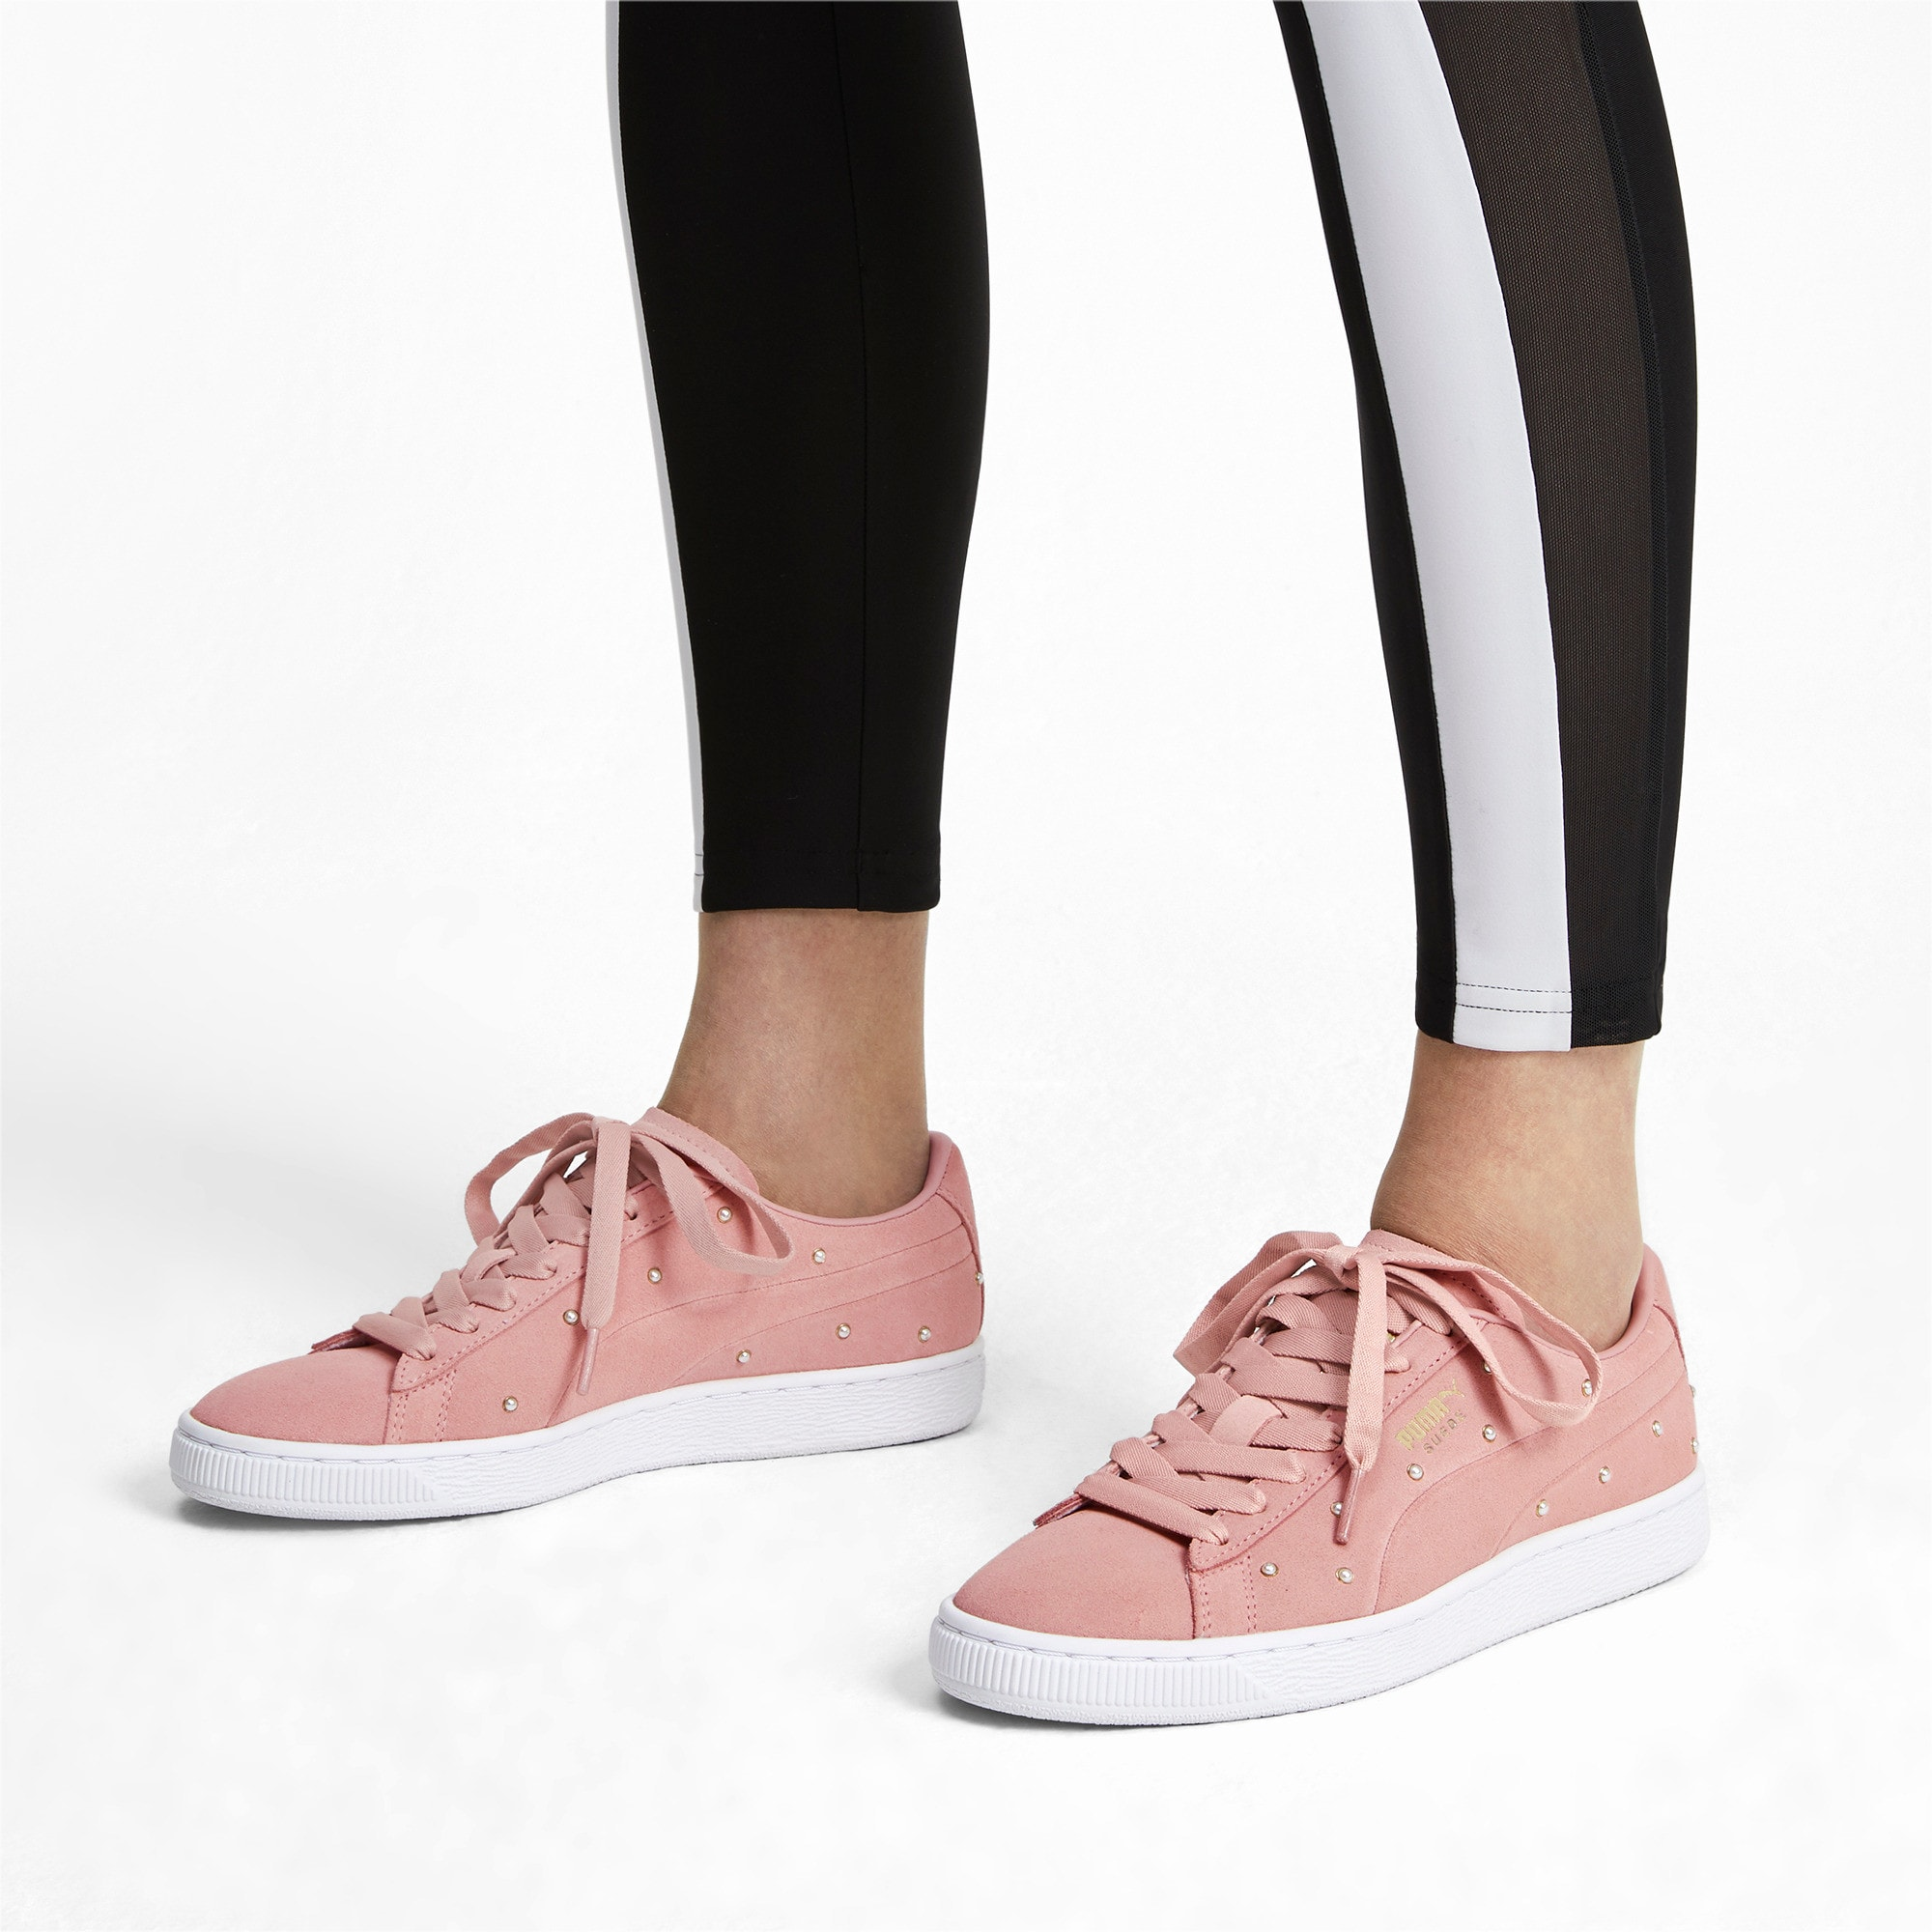 Suede Pearl Studs Women's Sneakers, Bridal Rose-Puma Team Gold, large